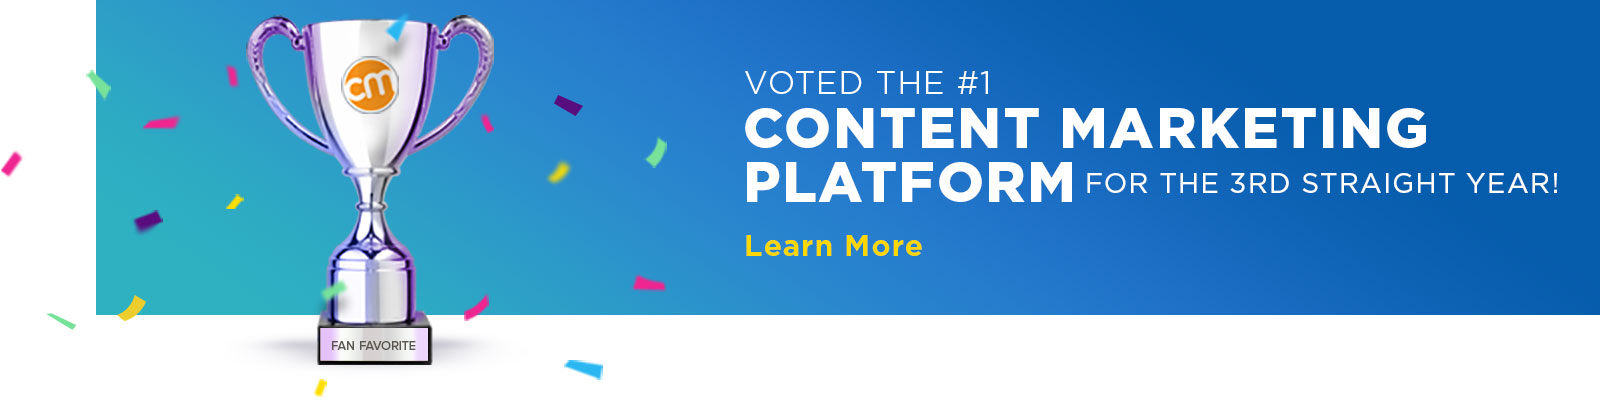 Voted the #1 Content Marketing Platform